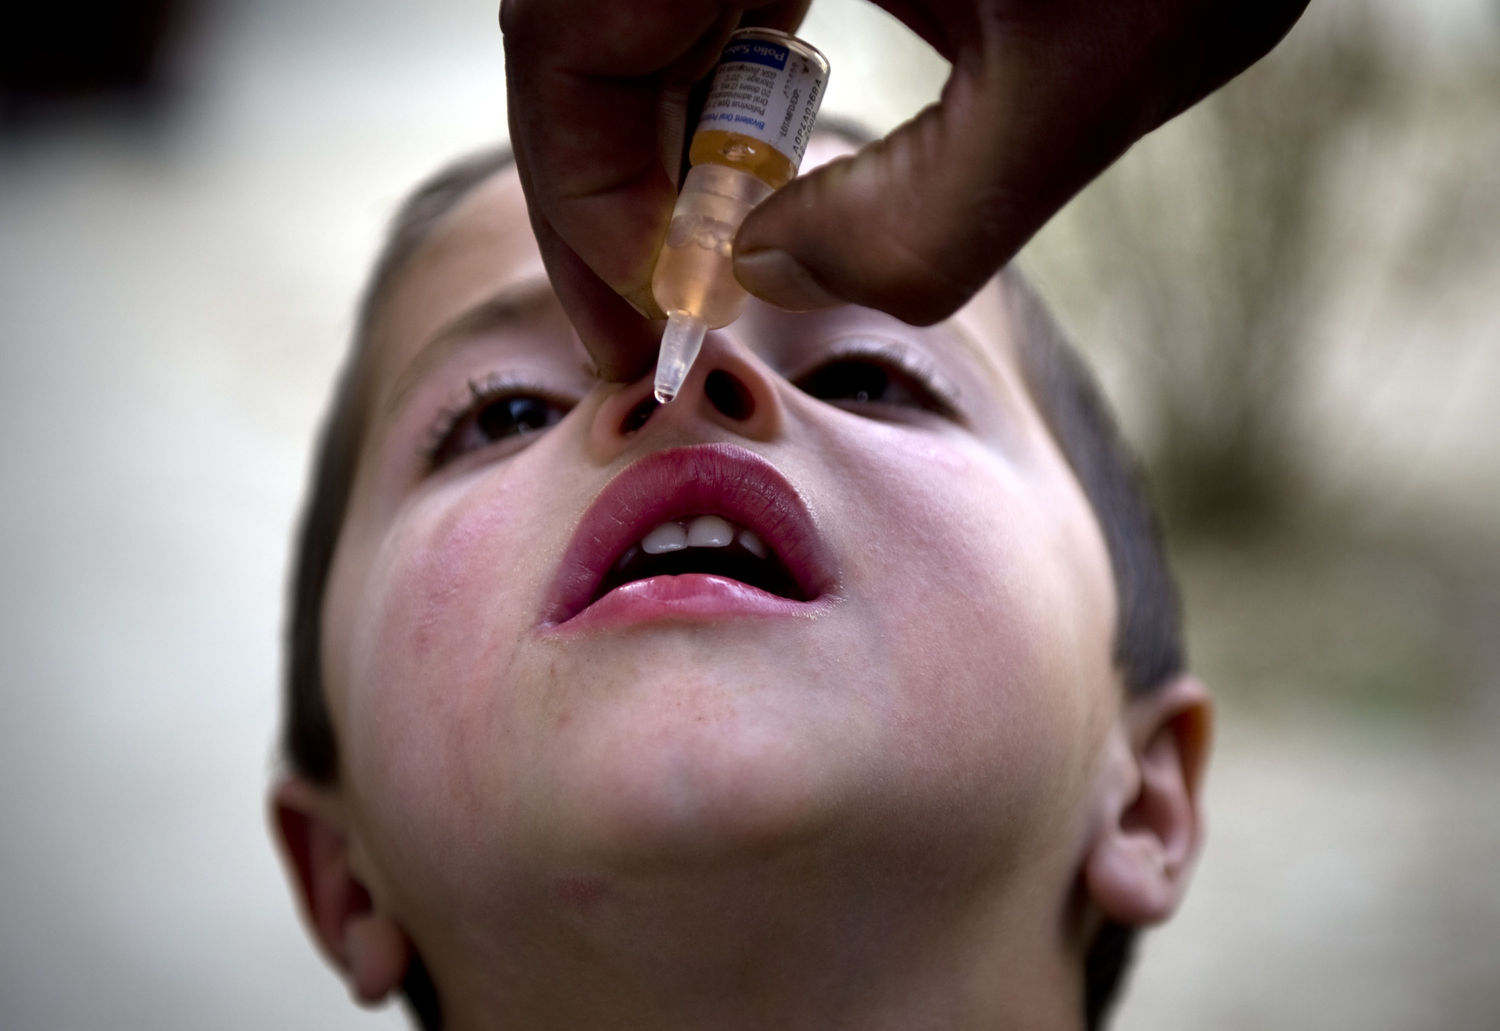 Lahore Declared Polio-Free after five Samples Test Negative